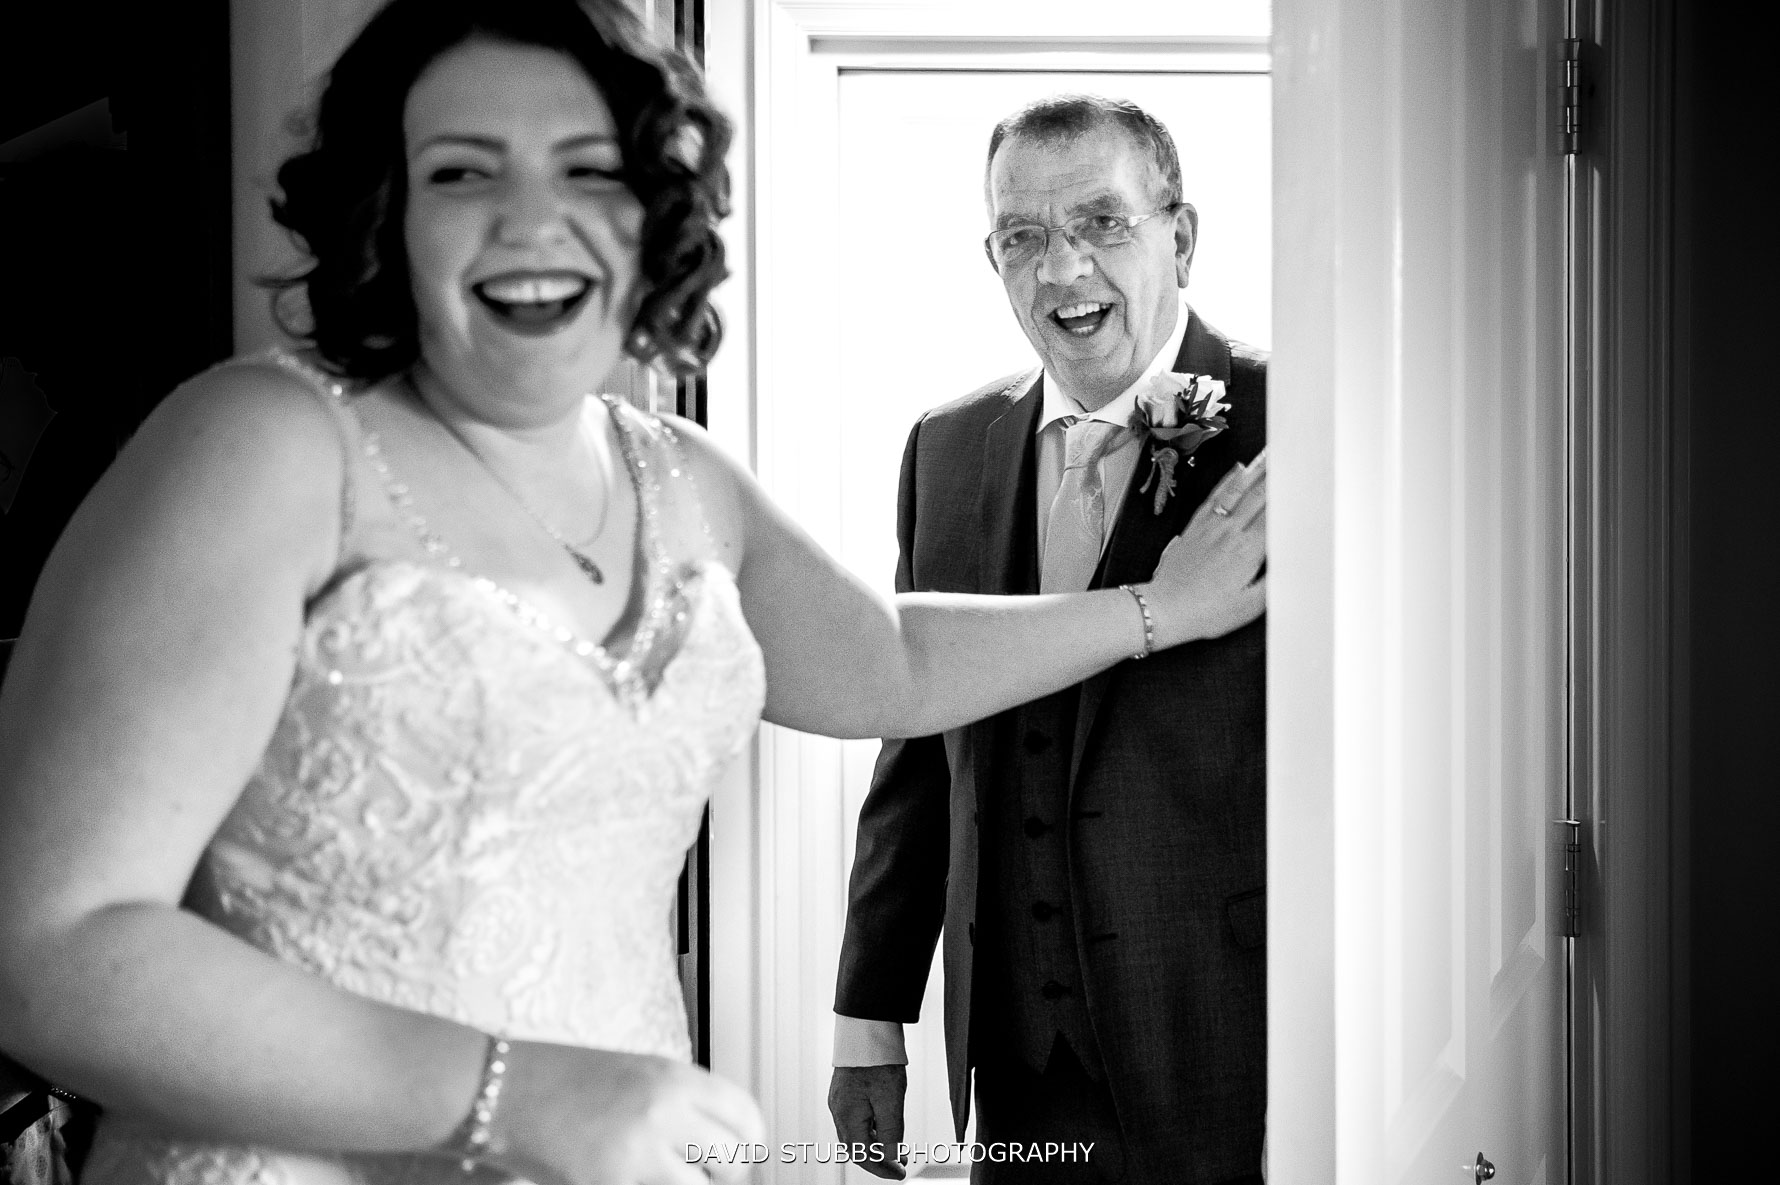 father of the bride seeing her in her wedding dress for the first time